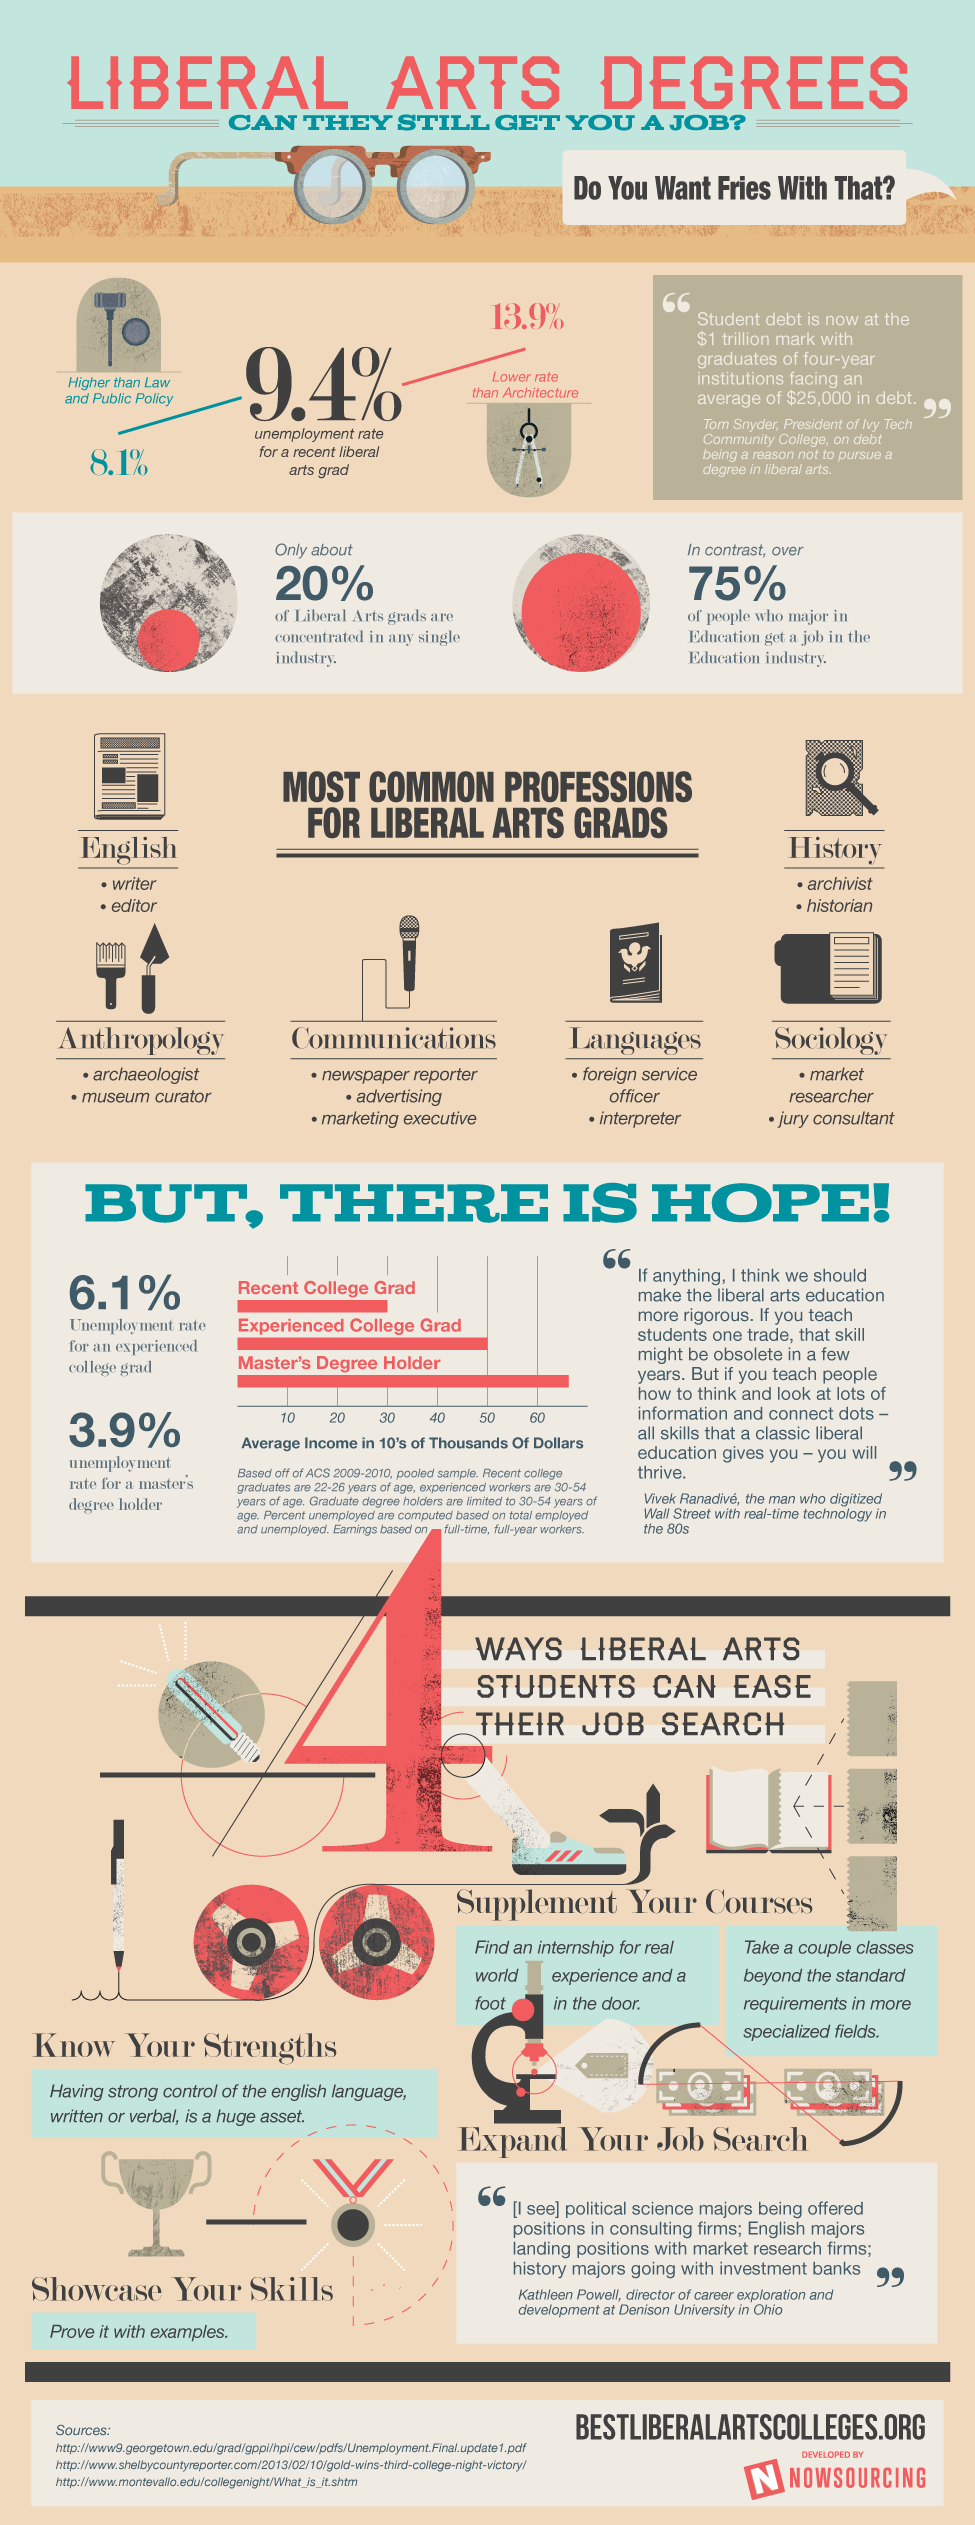 how to get a job a liberal arts degree liberal arts